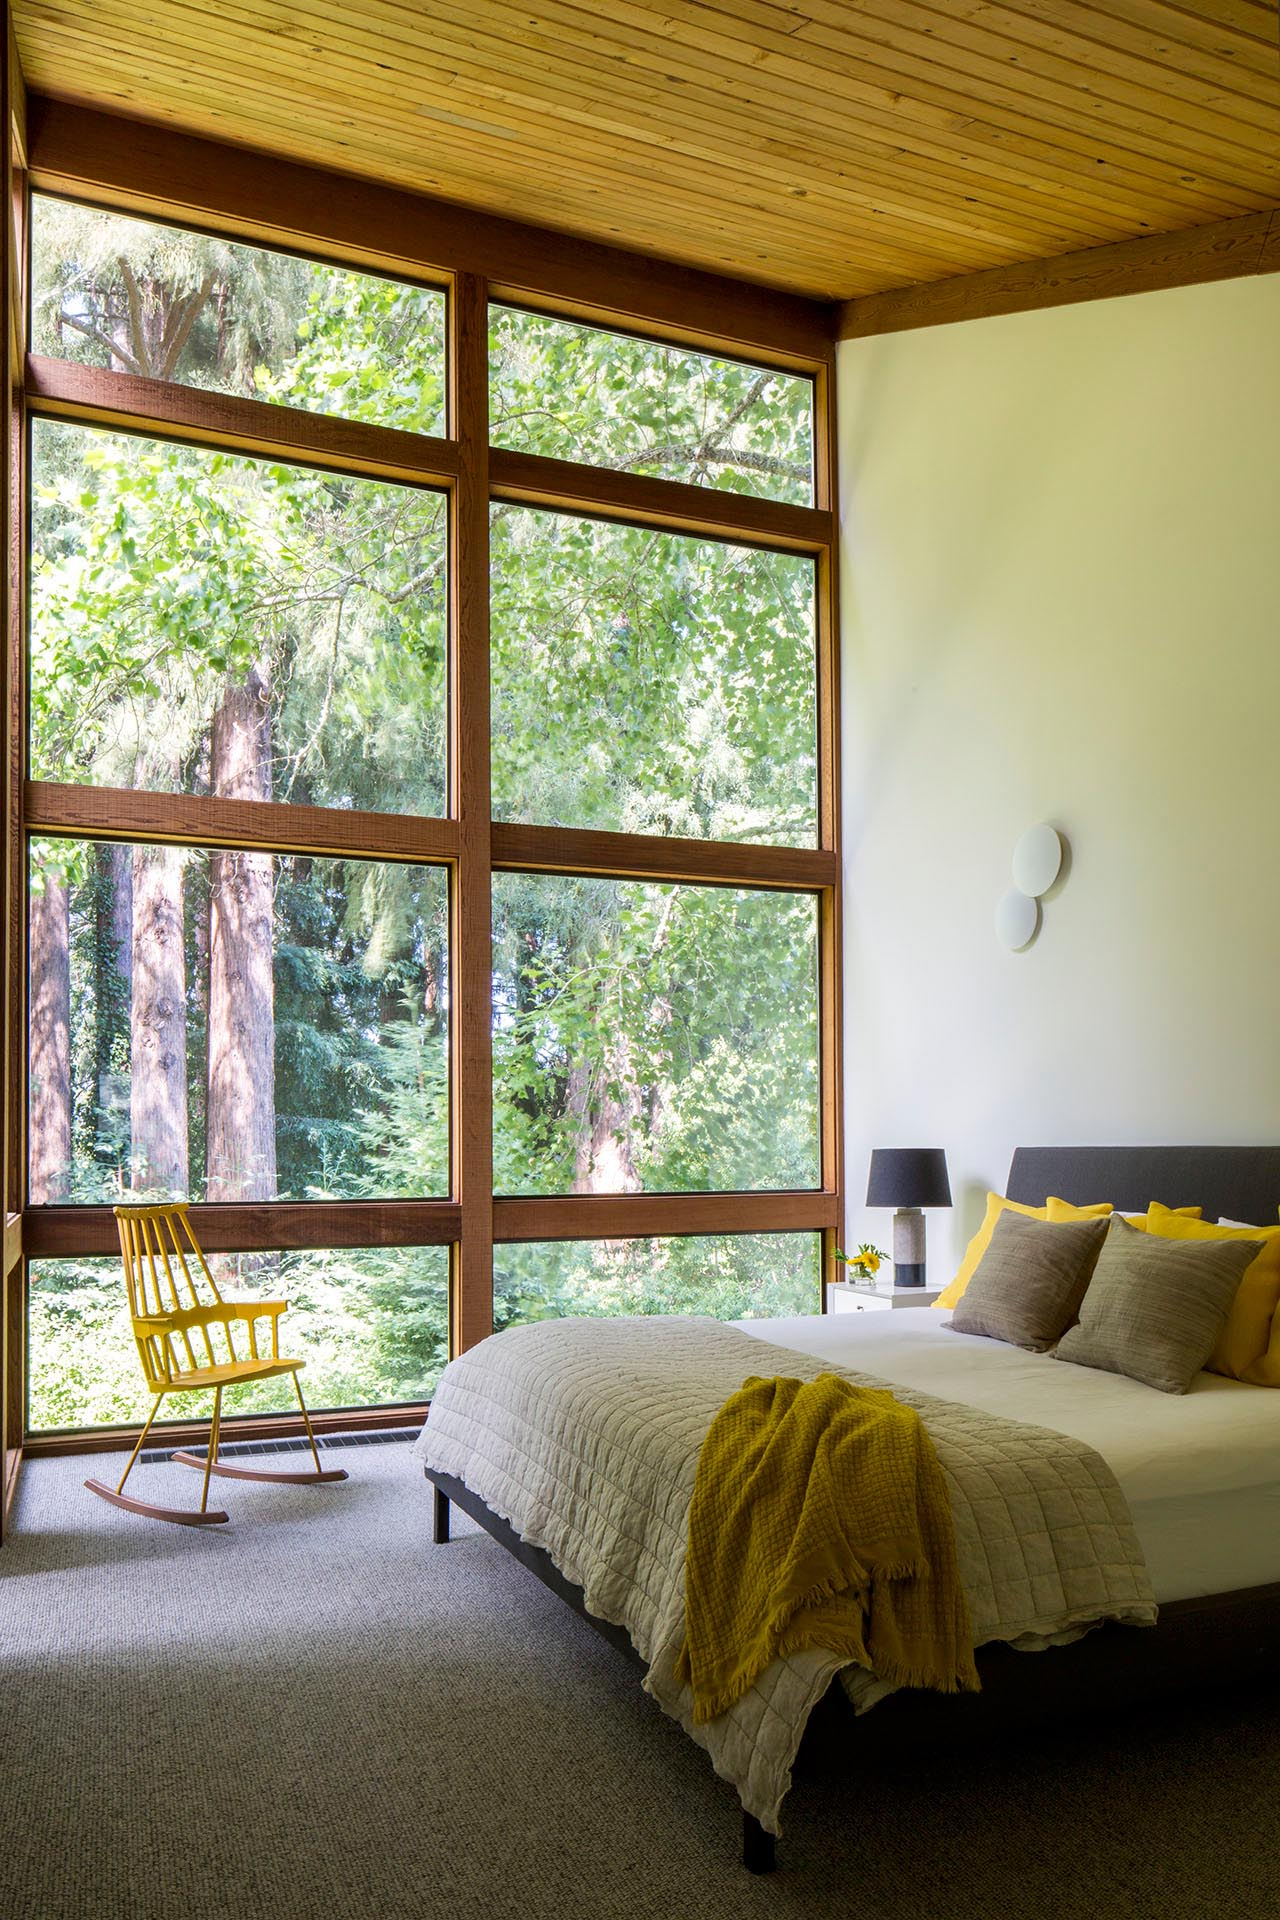 A modern bedroom with high ceilings and a wall of wood-framed windows.